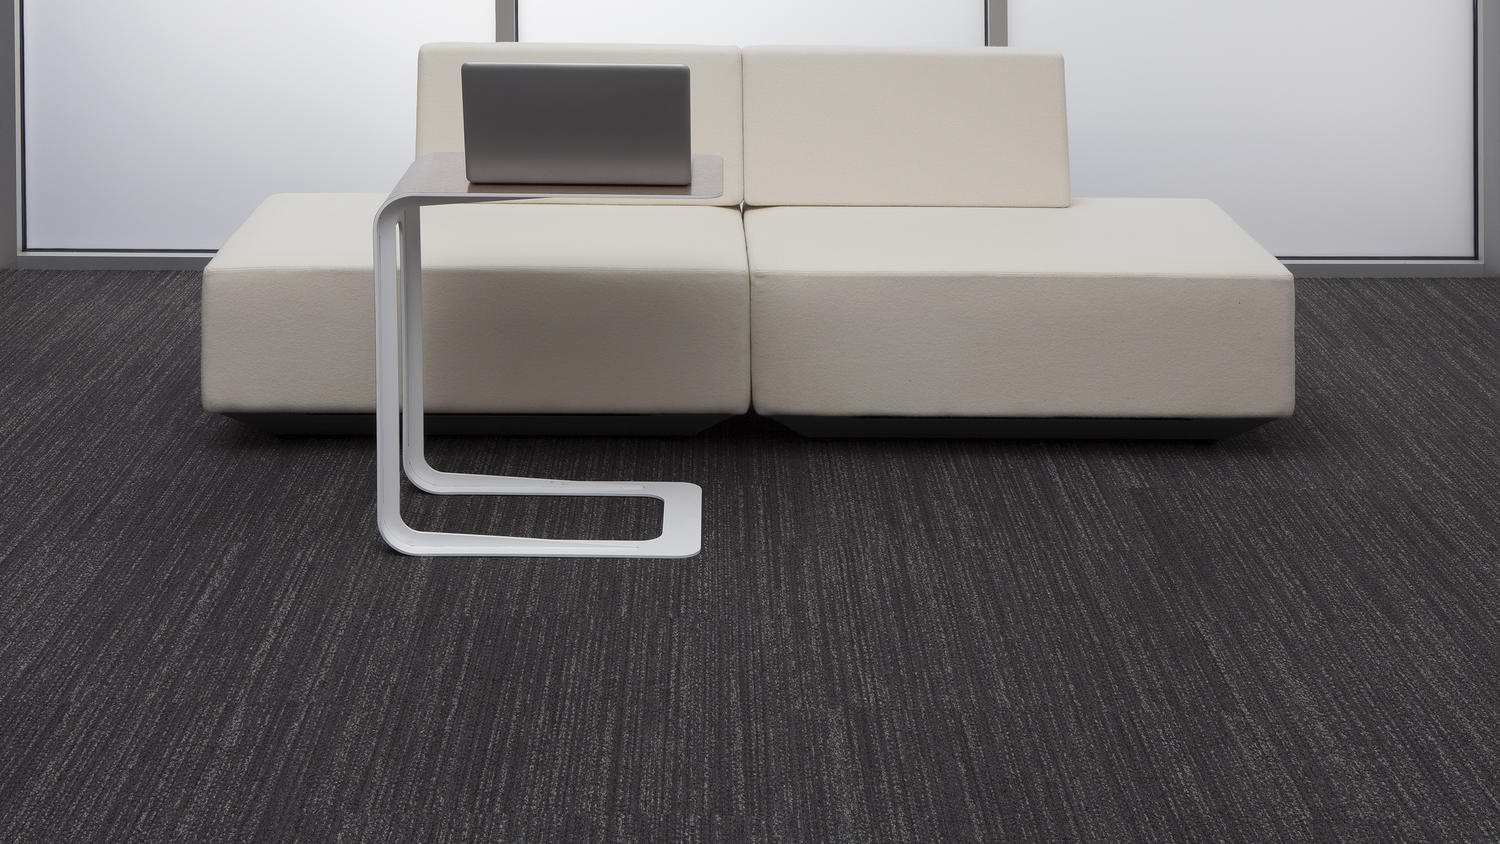 modular carpet backings UFYWPAF